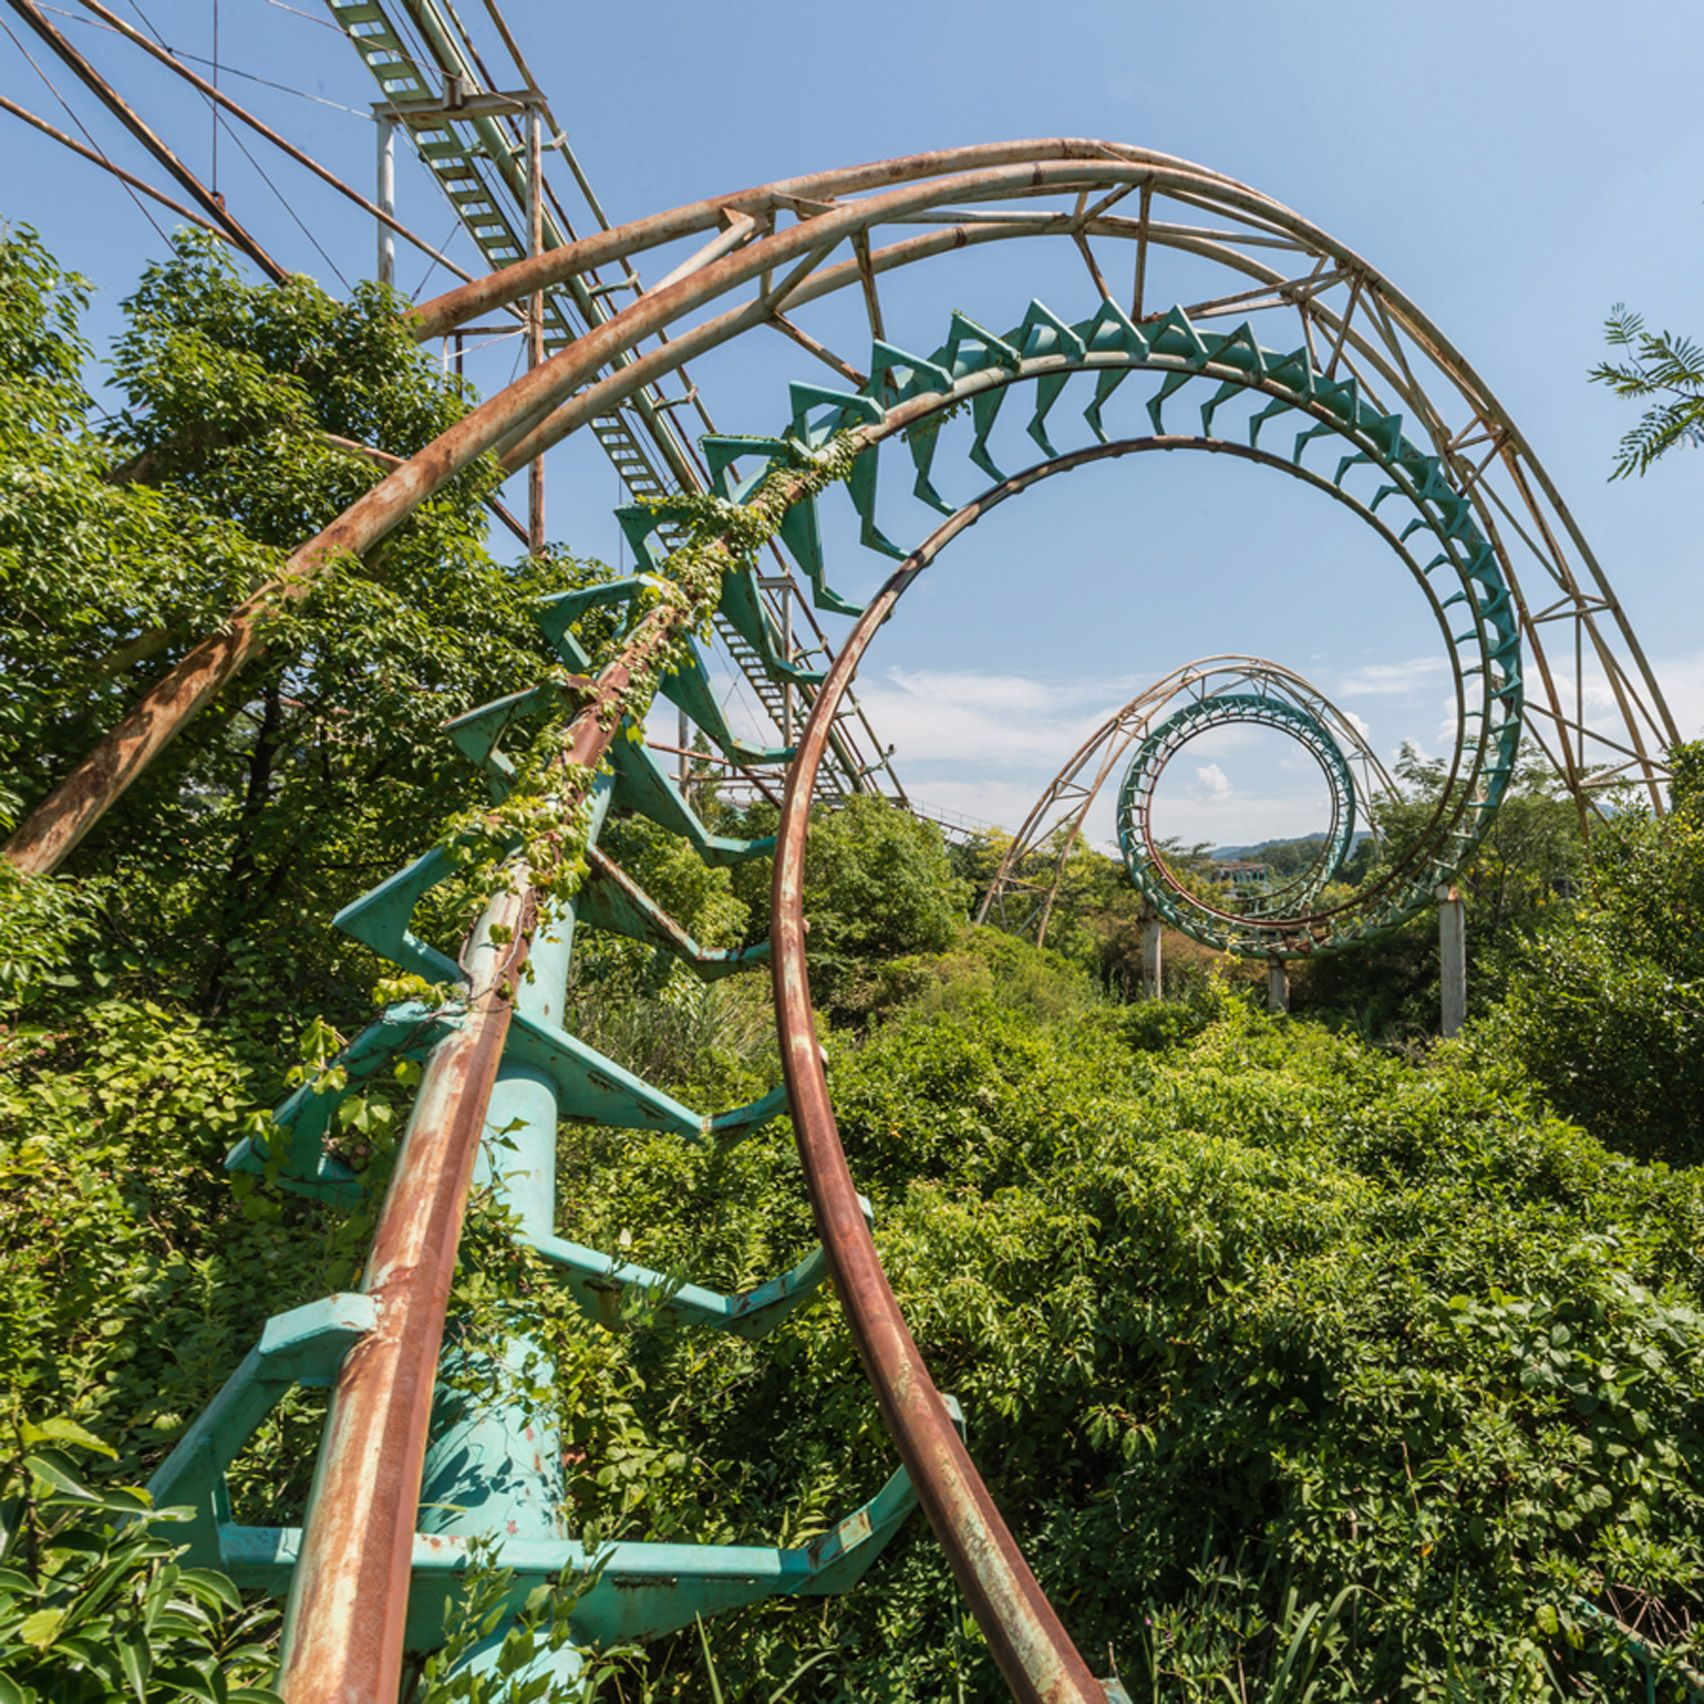 The abandoned and overgrown landscape of Nara Dreamland, a theme park closed for over a decade, are revealed in these images by photographer Romain Veillon